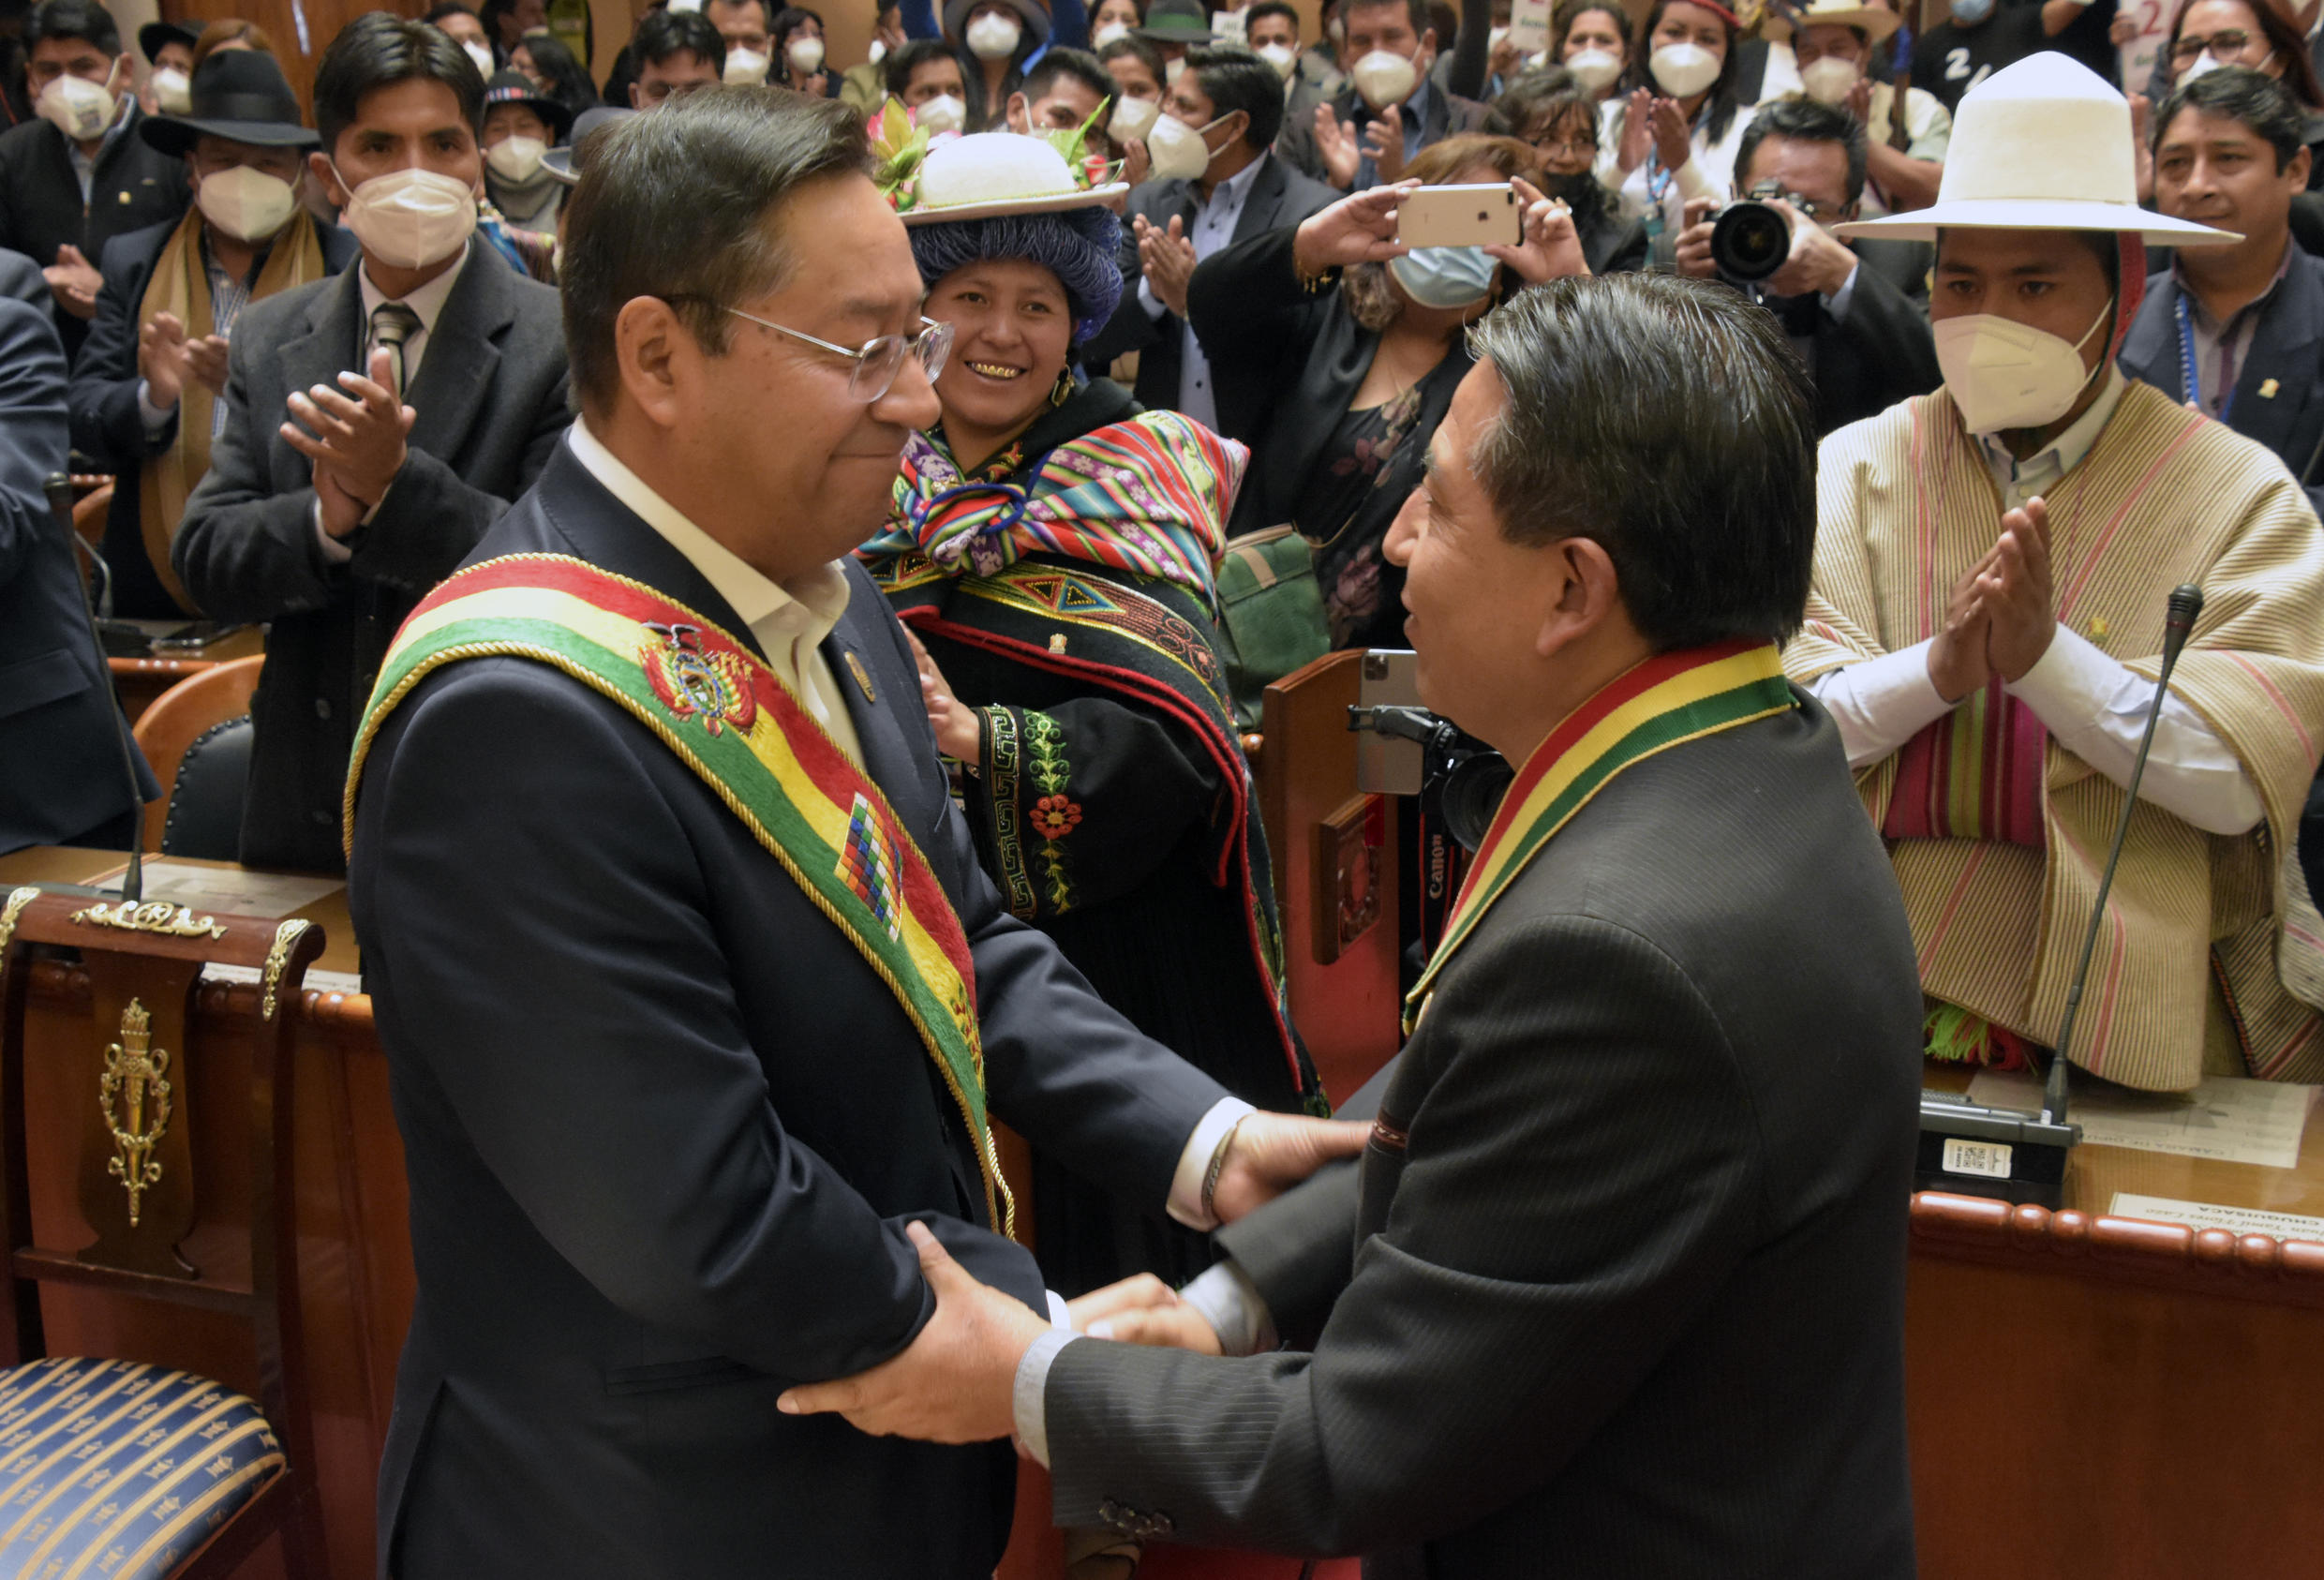 Luis Arce (L) and Vice President David Choquehuanca greet one another at a swearing-in before parliamentarians and foreign dignitaries in La Paz on November 8, 2020